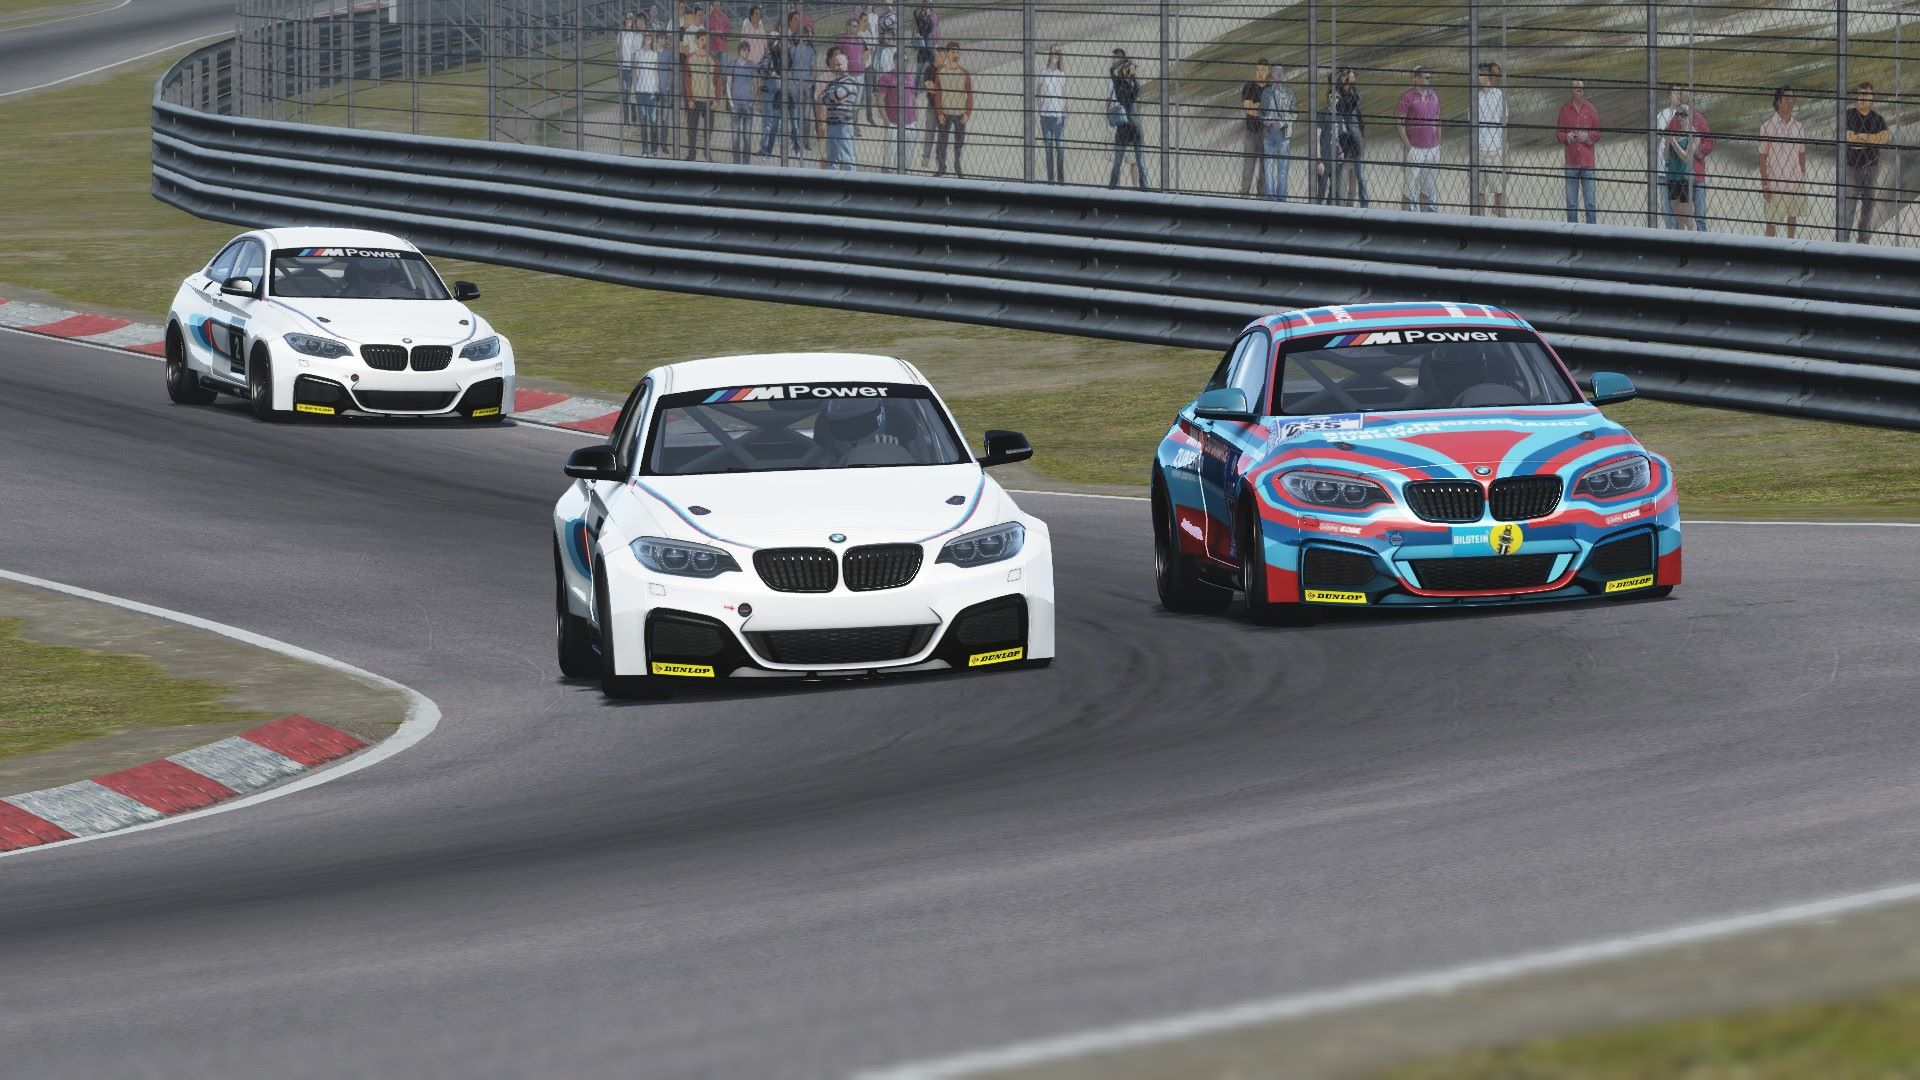 Bsimracing for Benelux cars